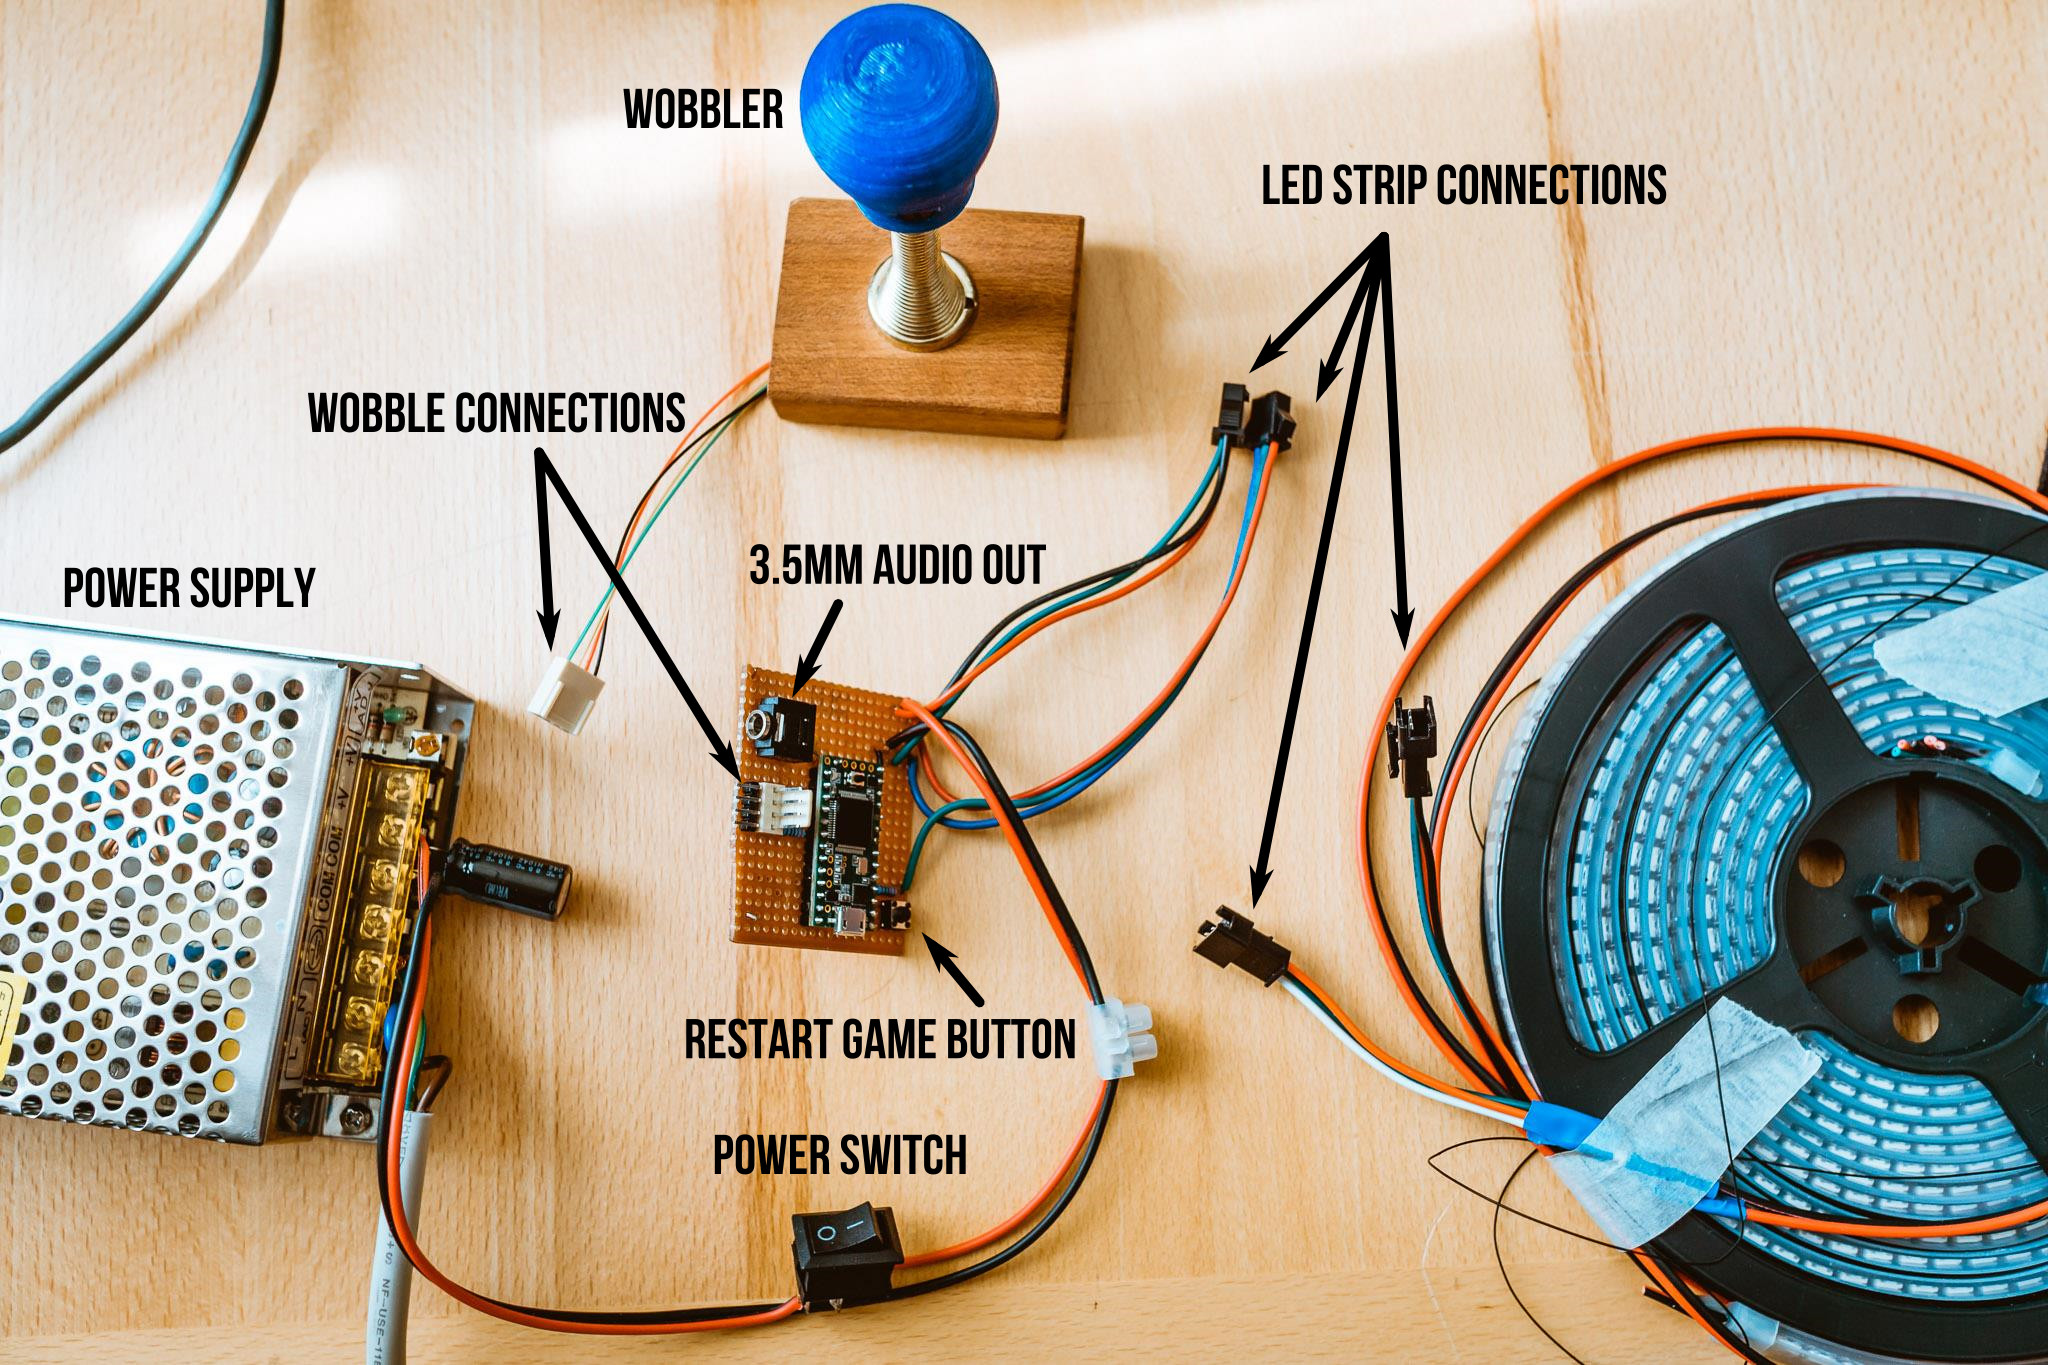 Robin Baumgartens Game Experiments Projectswobblersetup Old 3 5mm Audio Cable Wiring Scheme Setup Instructions